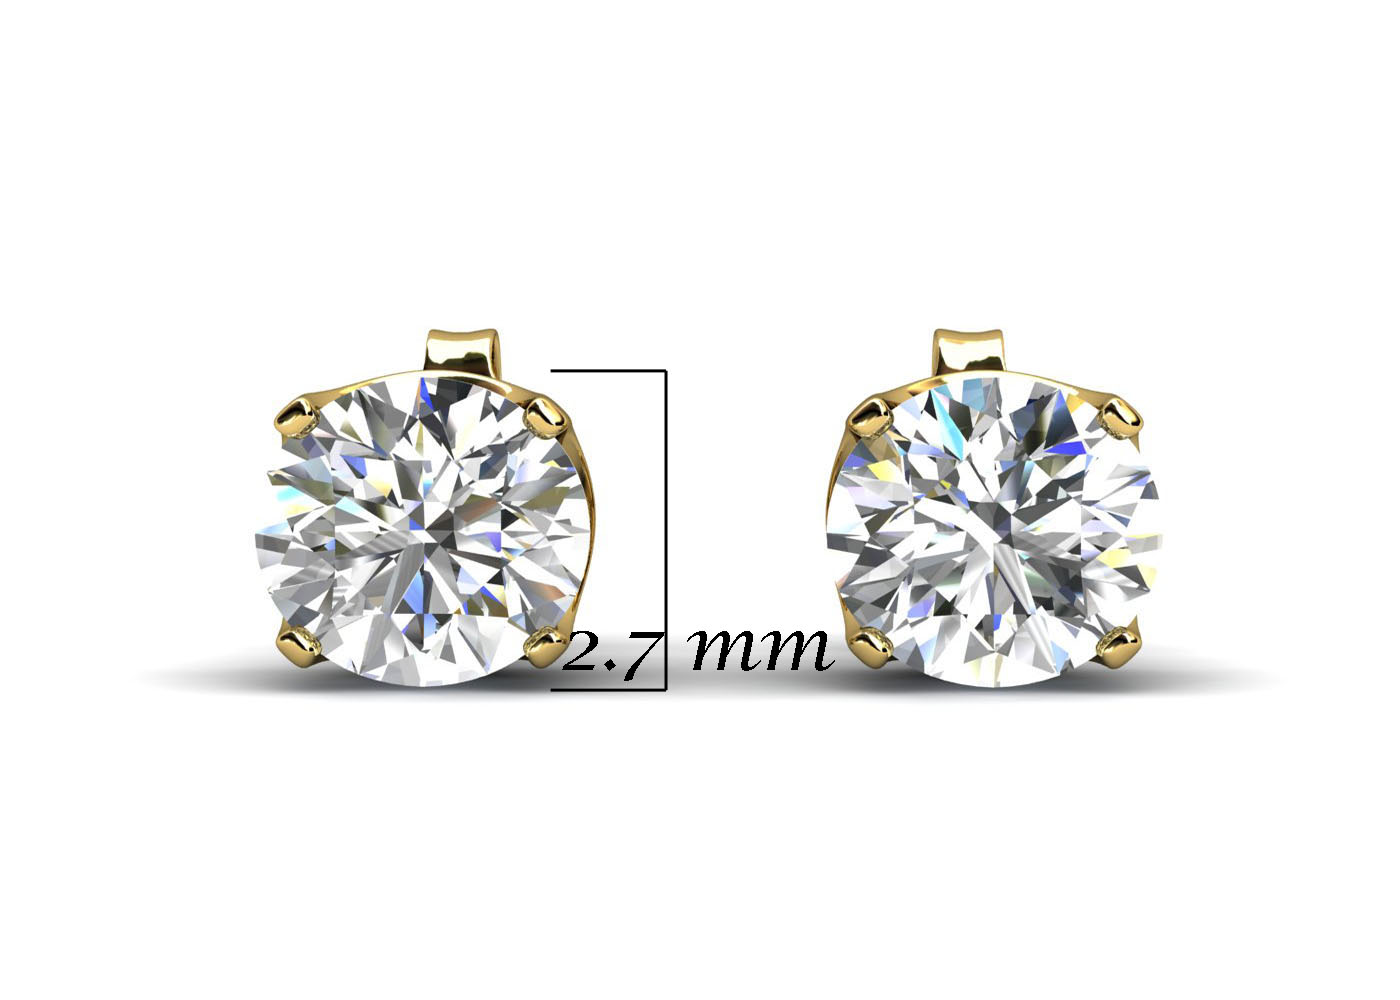 9ct Claw Set Diamond Earrings 0.40 Carats - Image 7 of 9